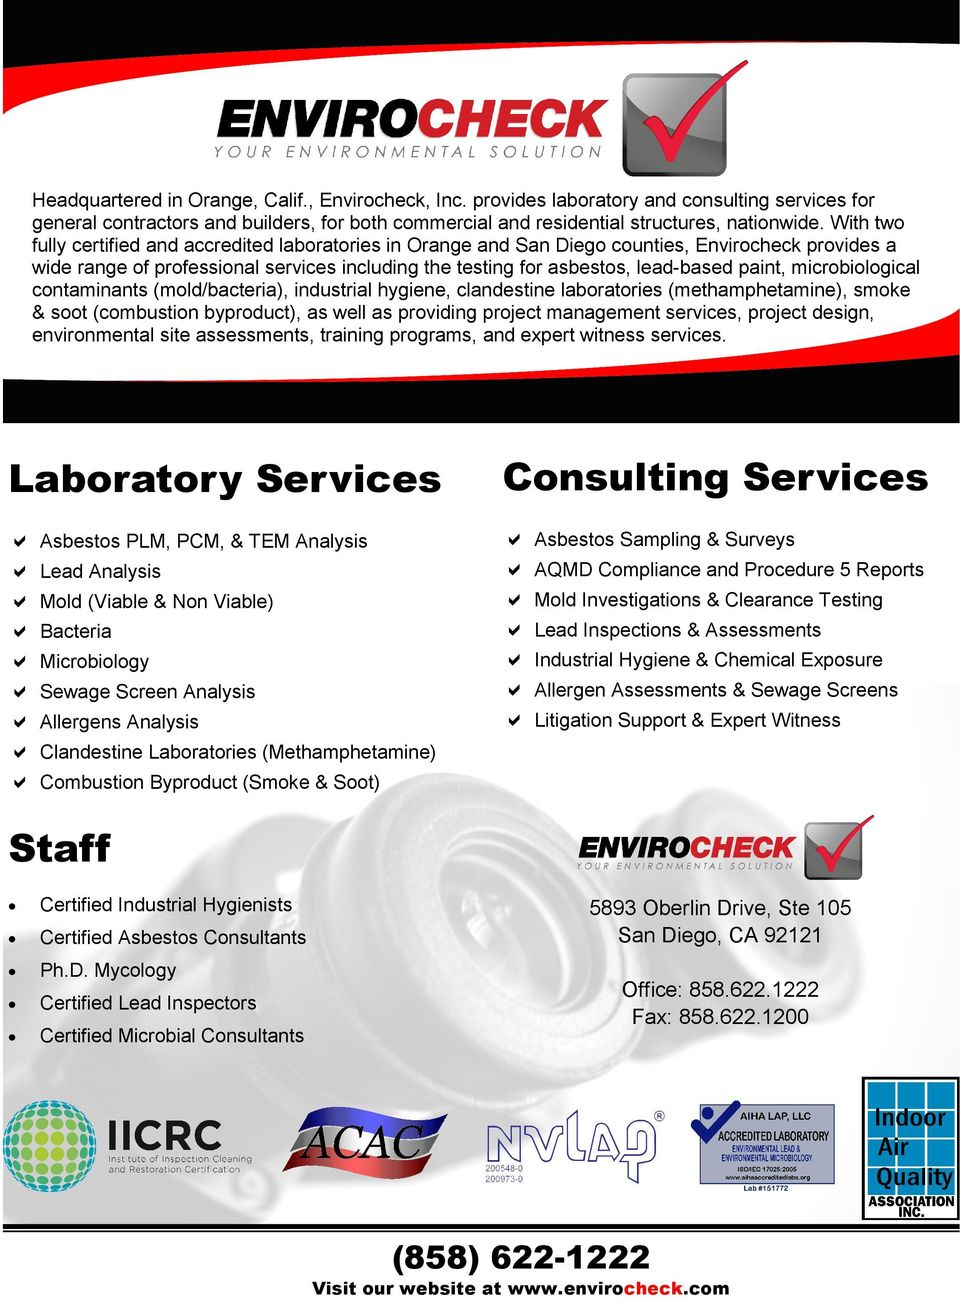 microbiological contaminants (mold/bacteria), industrial hygiene, clandestine laboratories (methamphetamine), smoke & soot (combustion byproduct), as well as providing project management services,